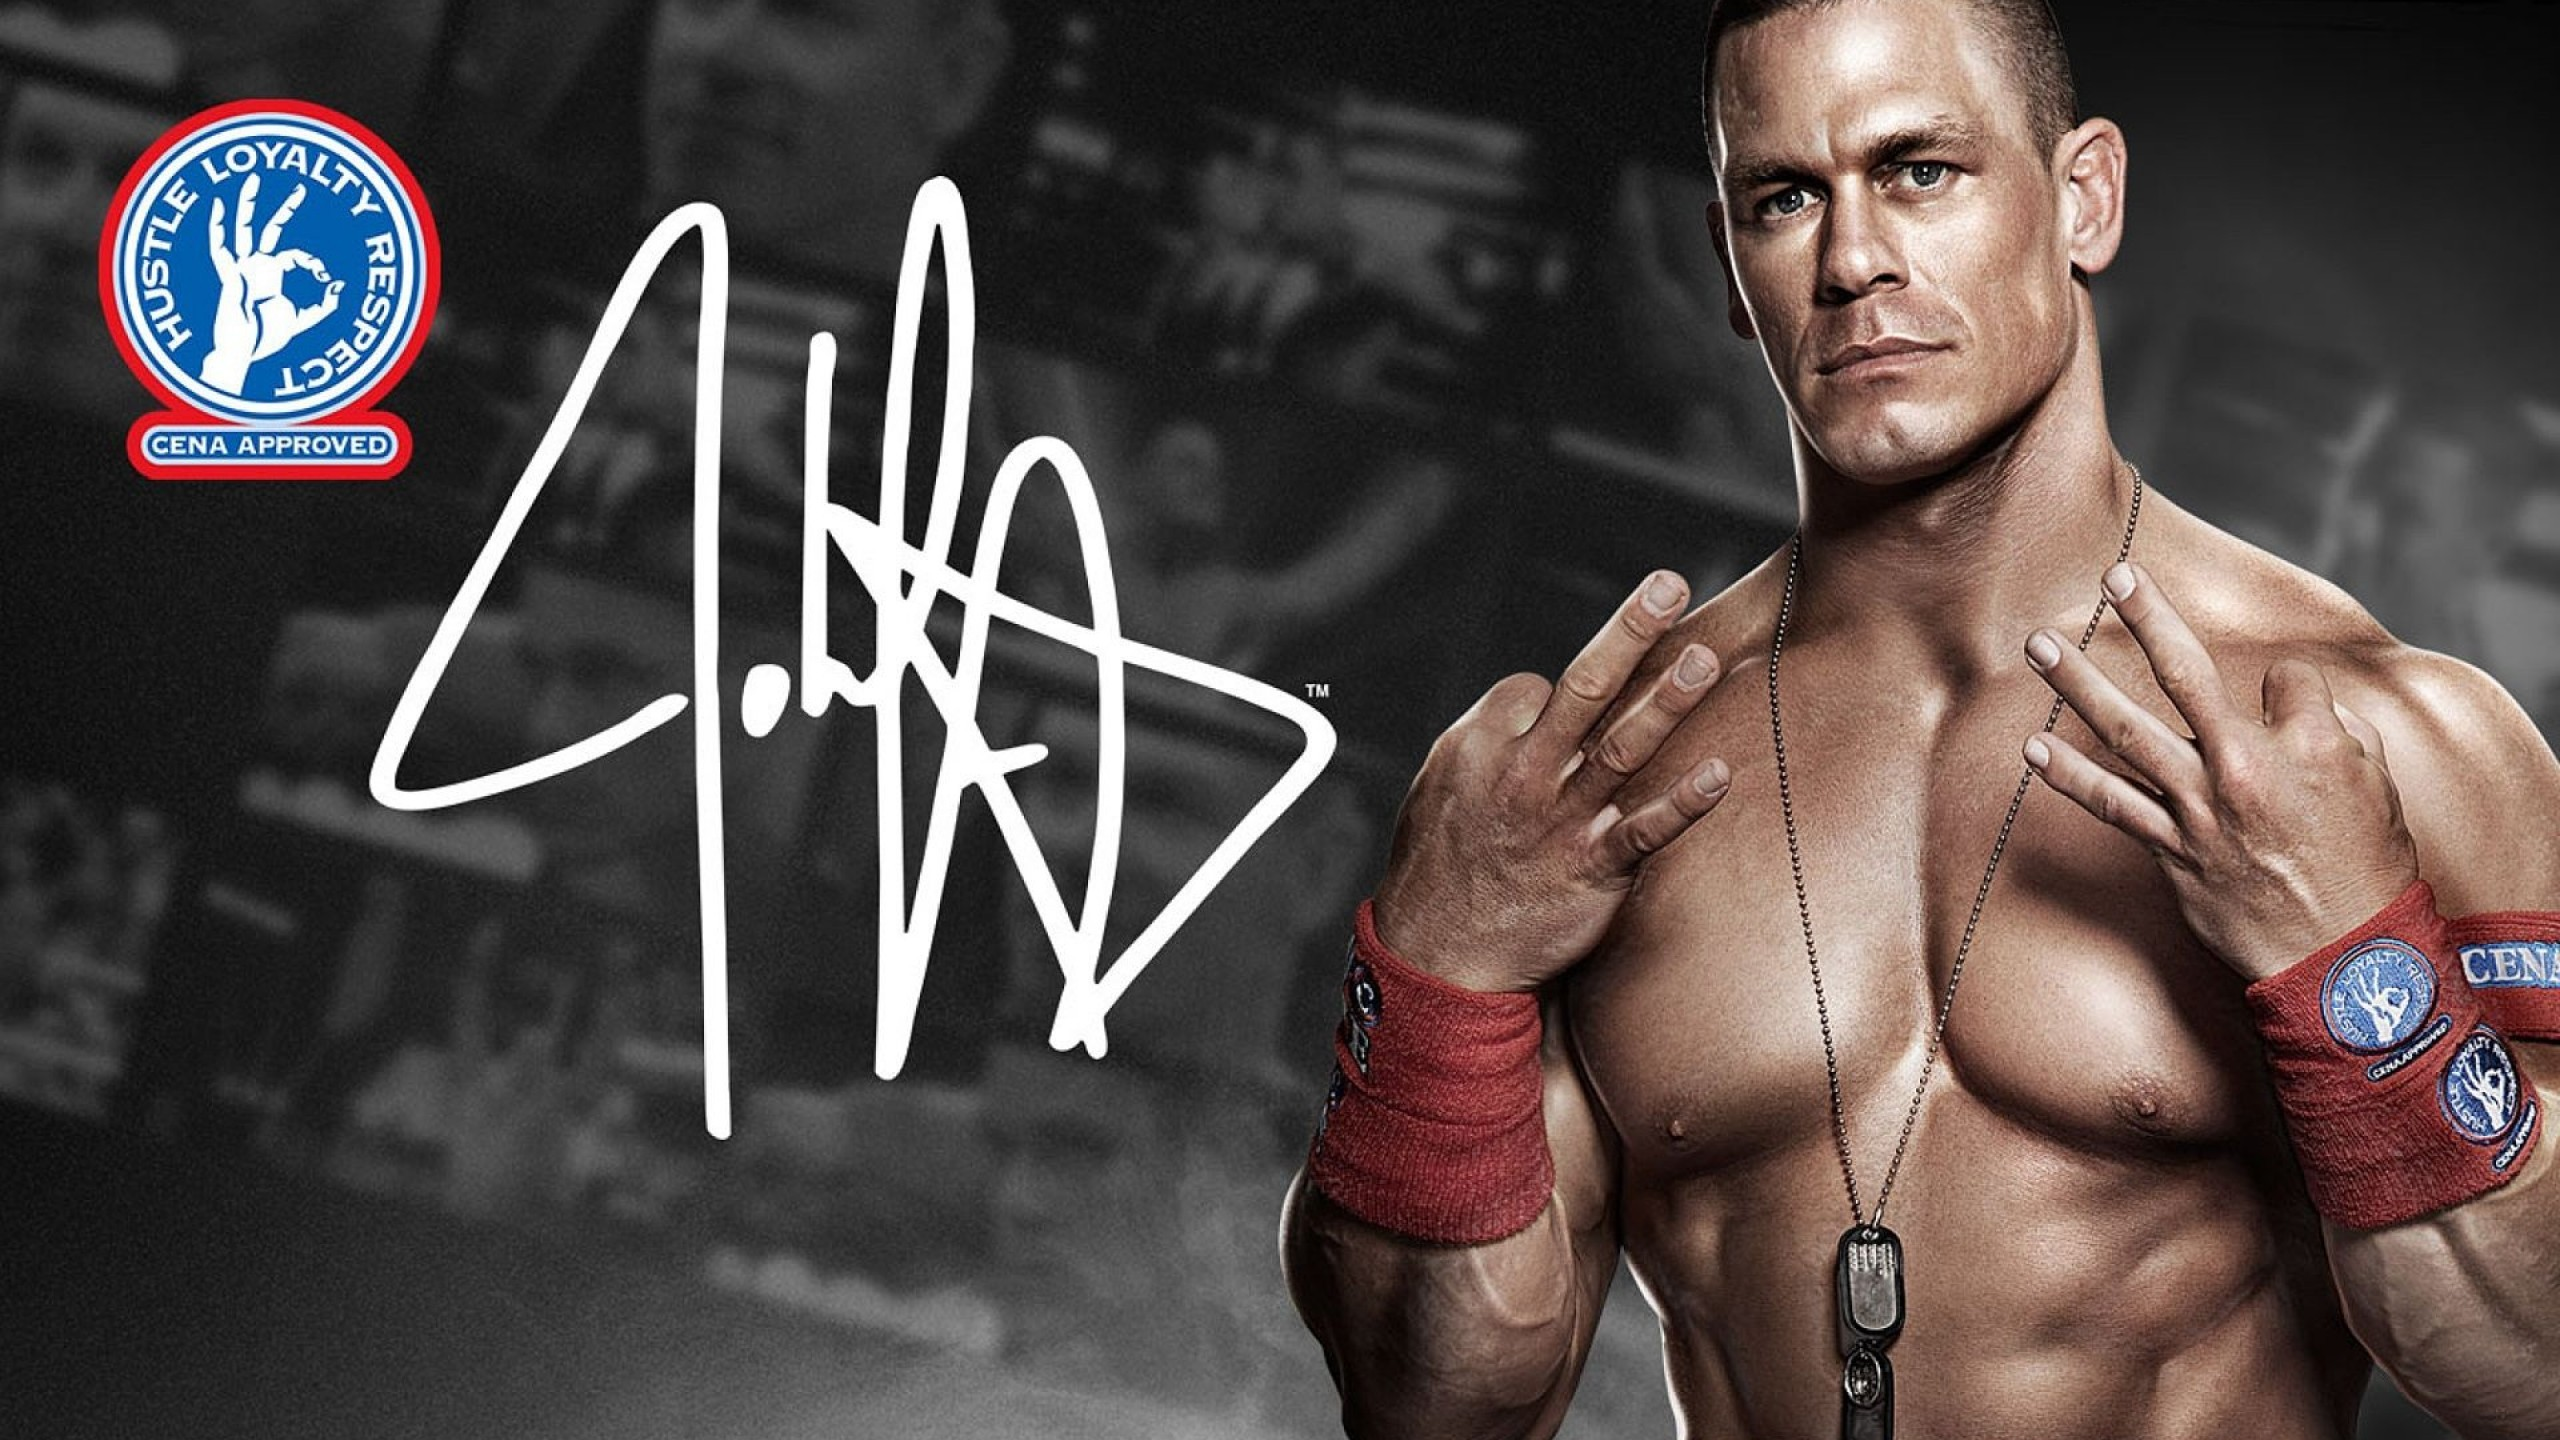 Res: 2560x1440, WWE HD Wallpaper | Background Image |  | ID:518178 - Wallpaper  Abyss